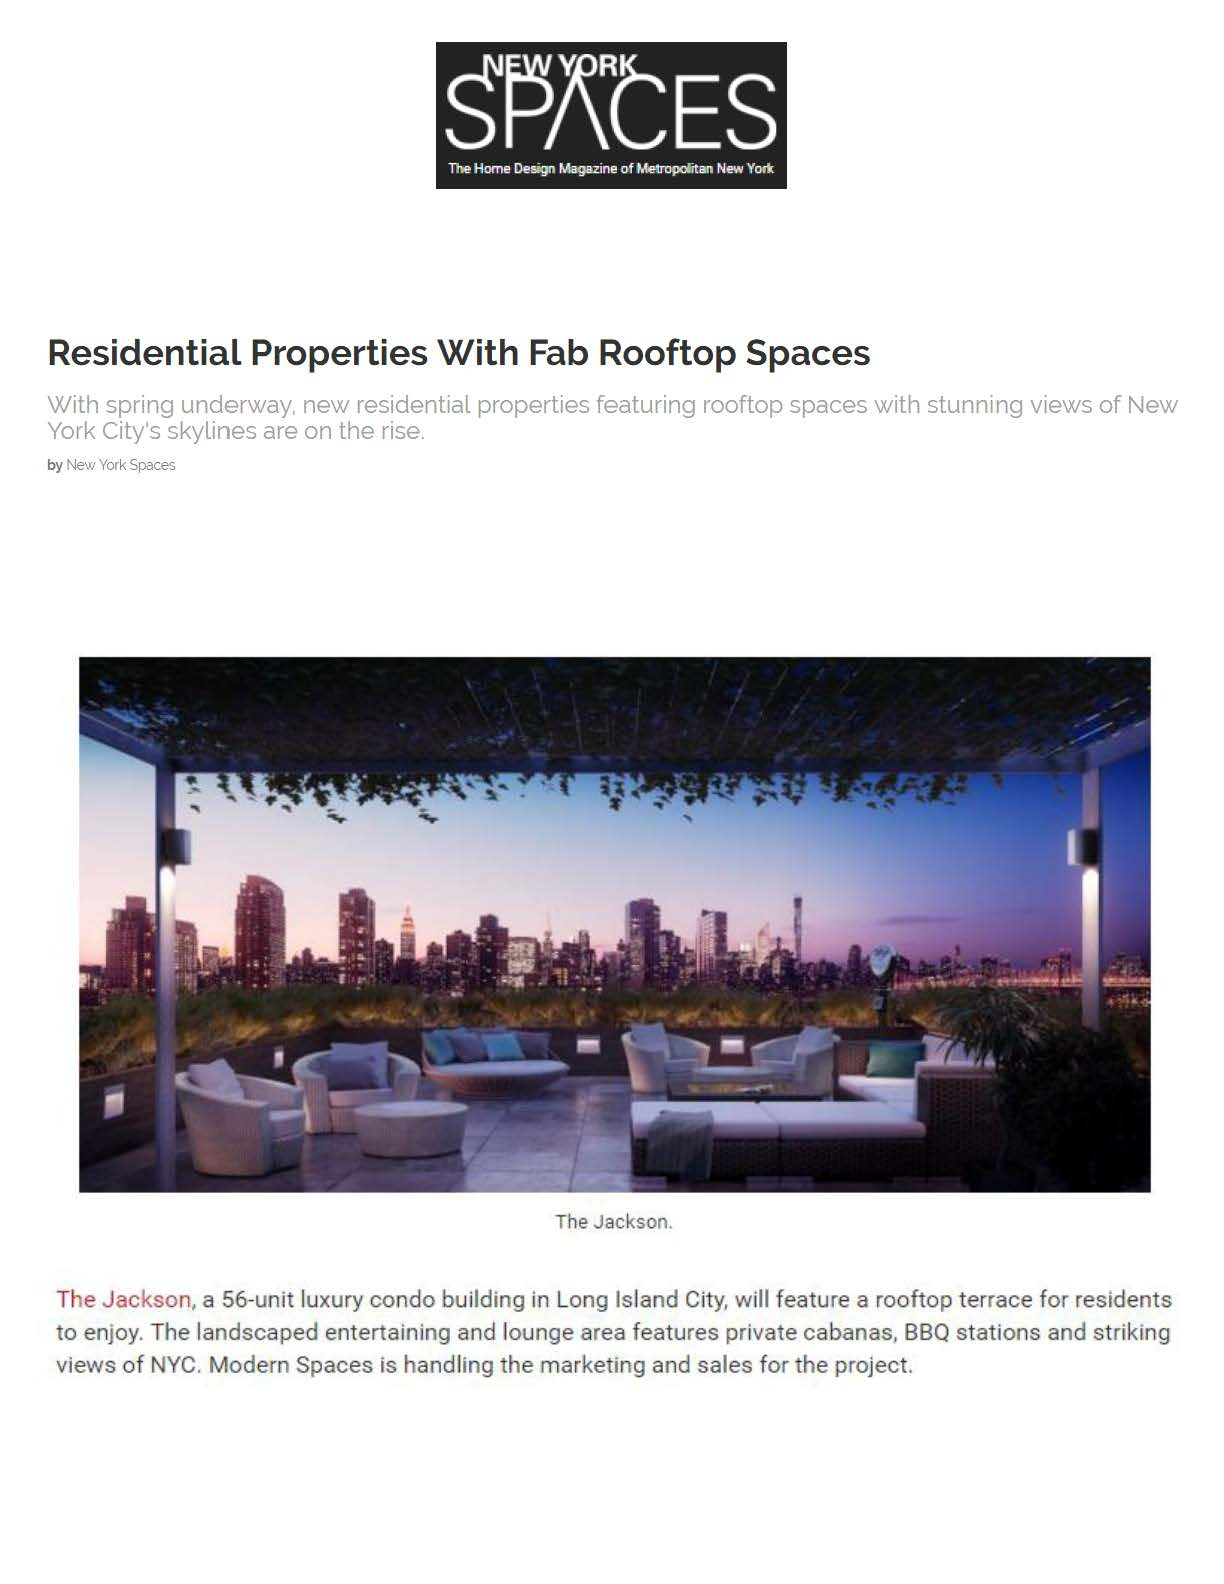 New York Spaces - Residential Properties With Fab Rooftop Spaces - 4.18.... (1)_Page_1